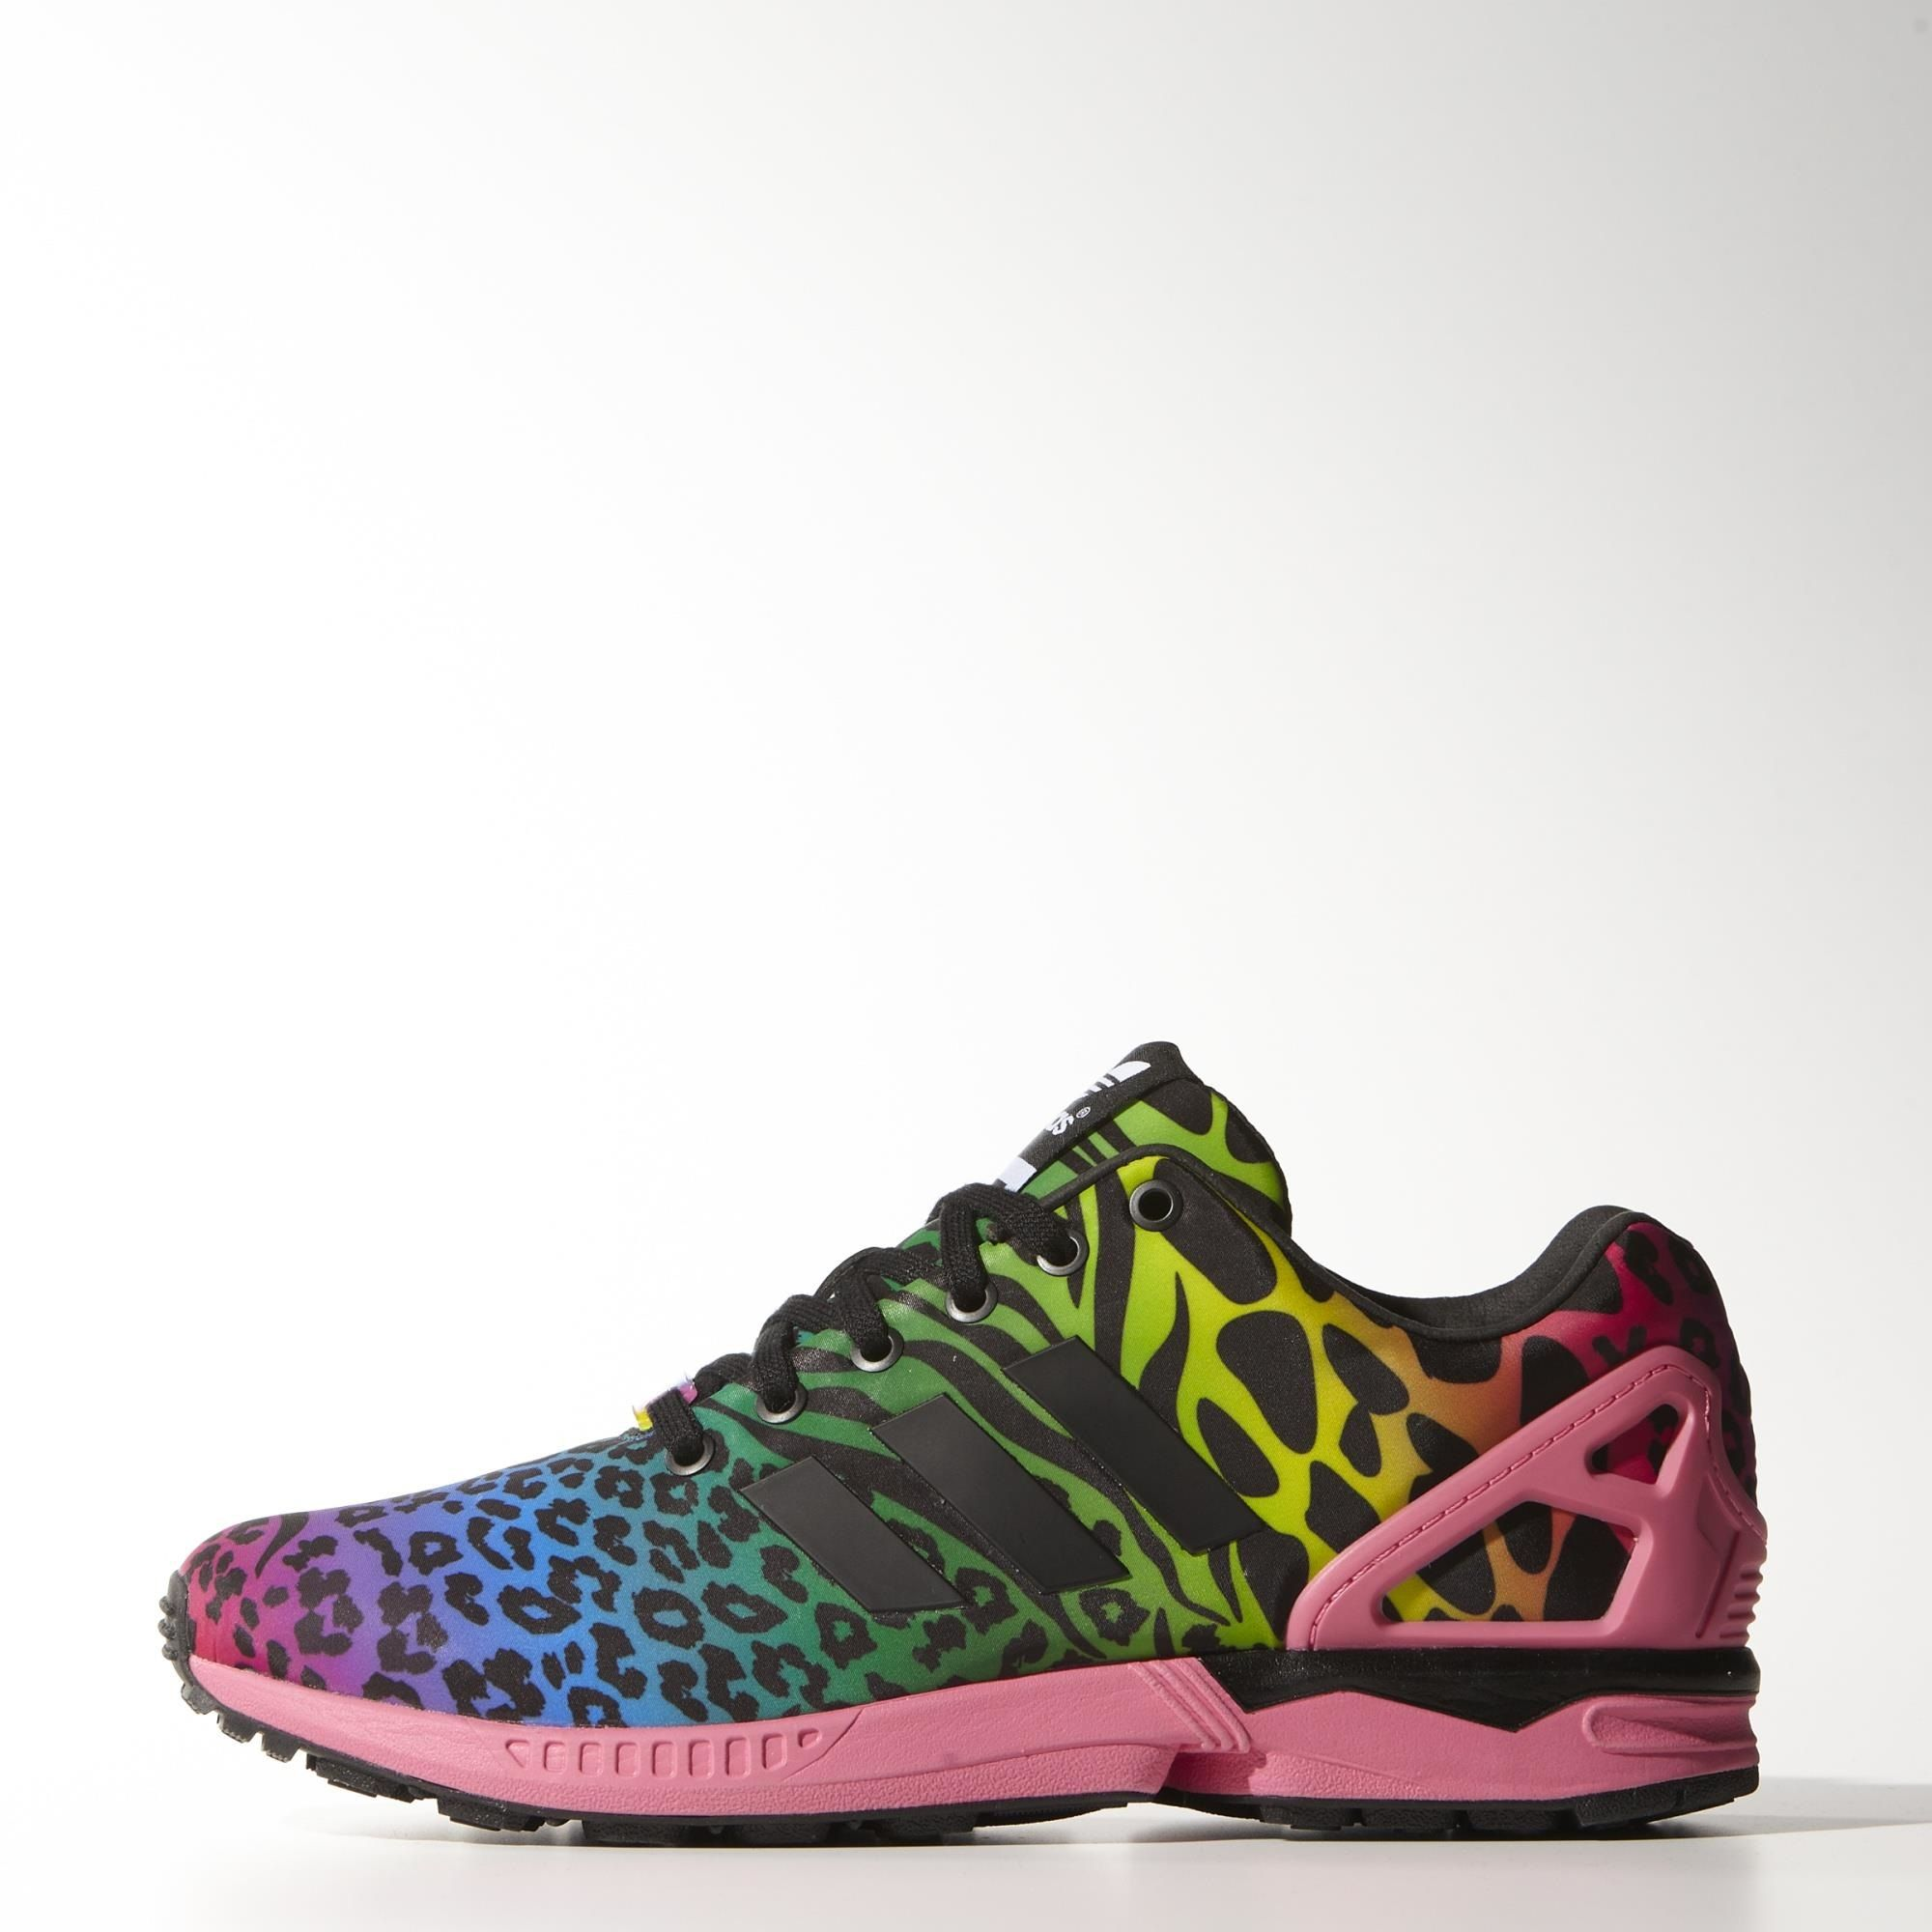 adidas zx flux xeno Pink